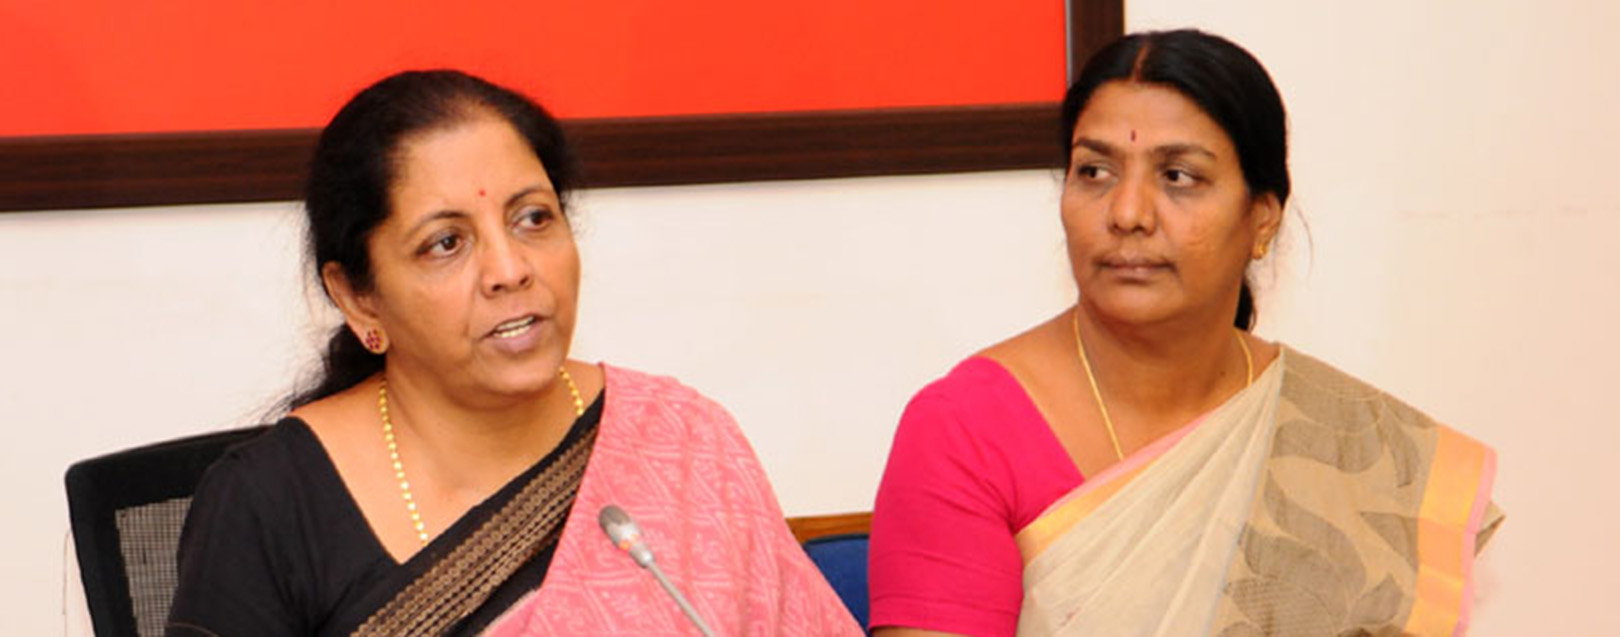 India keen to increase manufacturing sector's contribution to GDP to 25%, Sitharaman